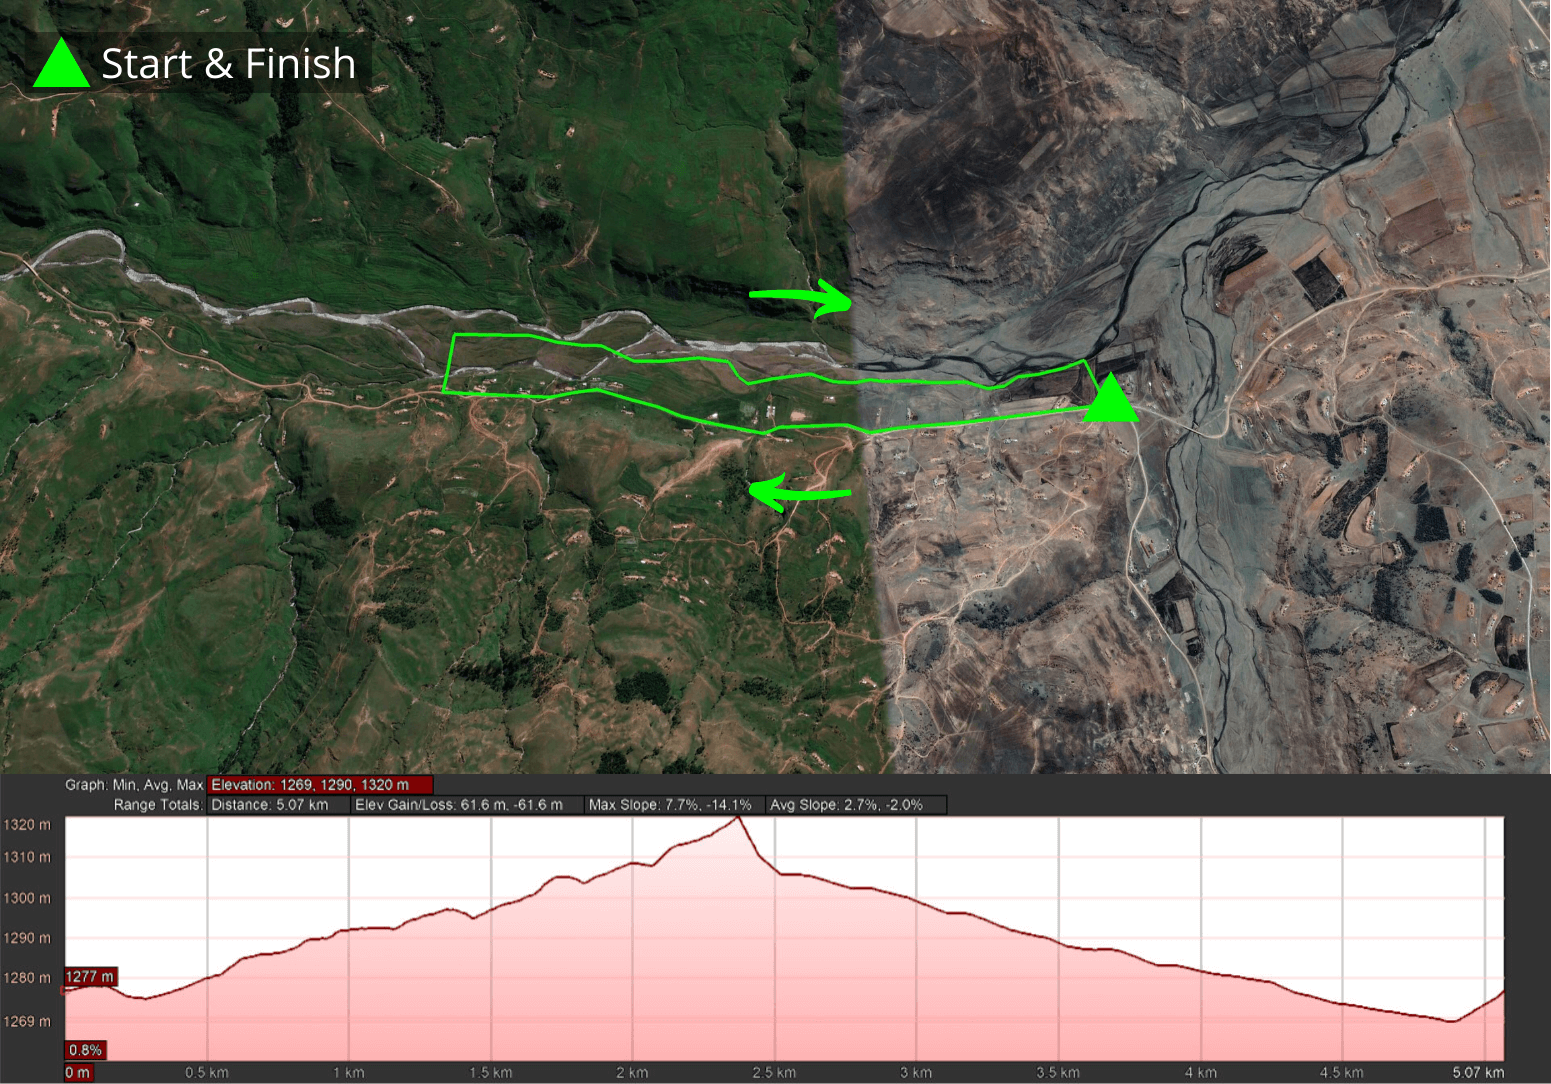 KZNTR Mweni Mountain Marathon May21 - 5km Course 2021-04-23 V1